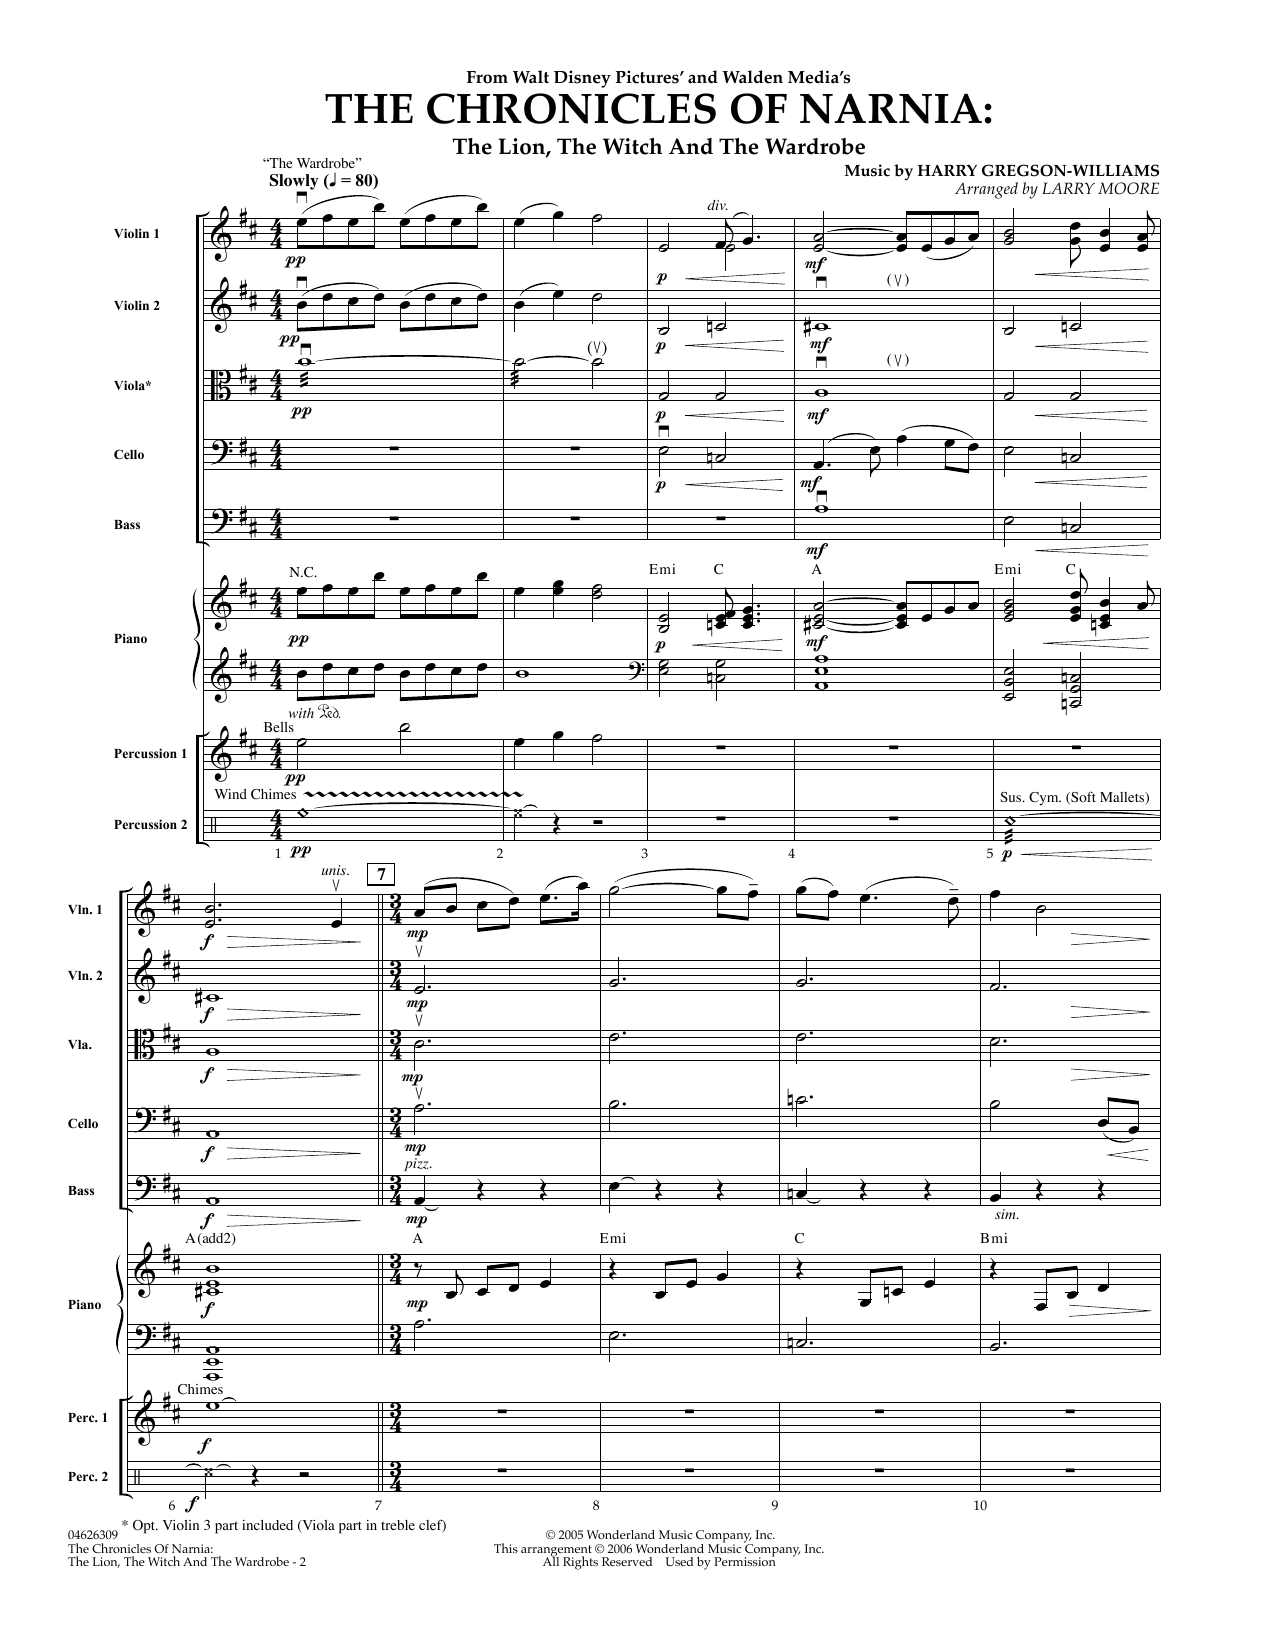 The Chronicles of Narnia (COMPLETE) sheet music for orchestra by Harry Gregson-Williams and Larry Moore. Score Image Preview.